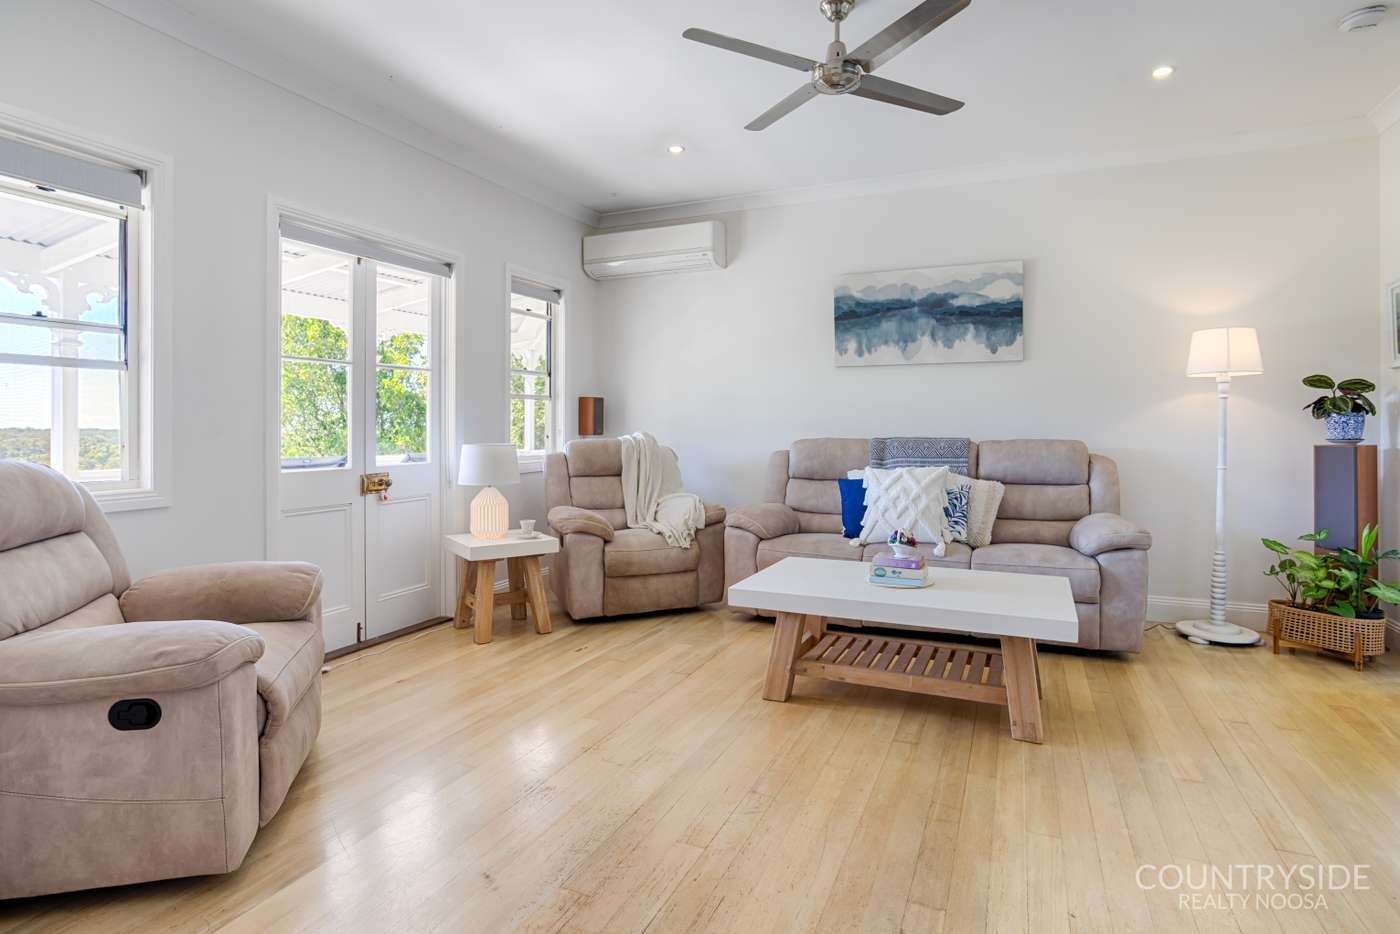 Seventh view of Homely house listing, 19 Ash Lane, Black Mountain QLD 4563